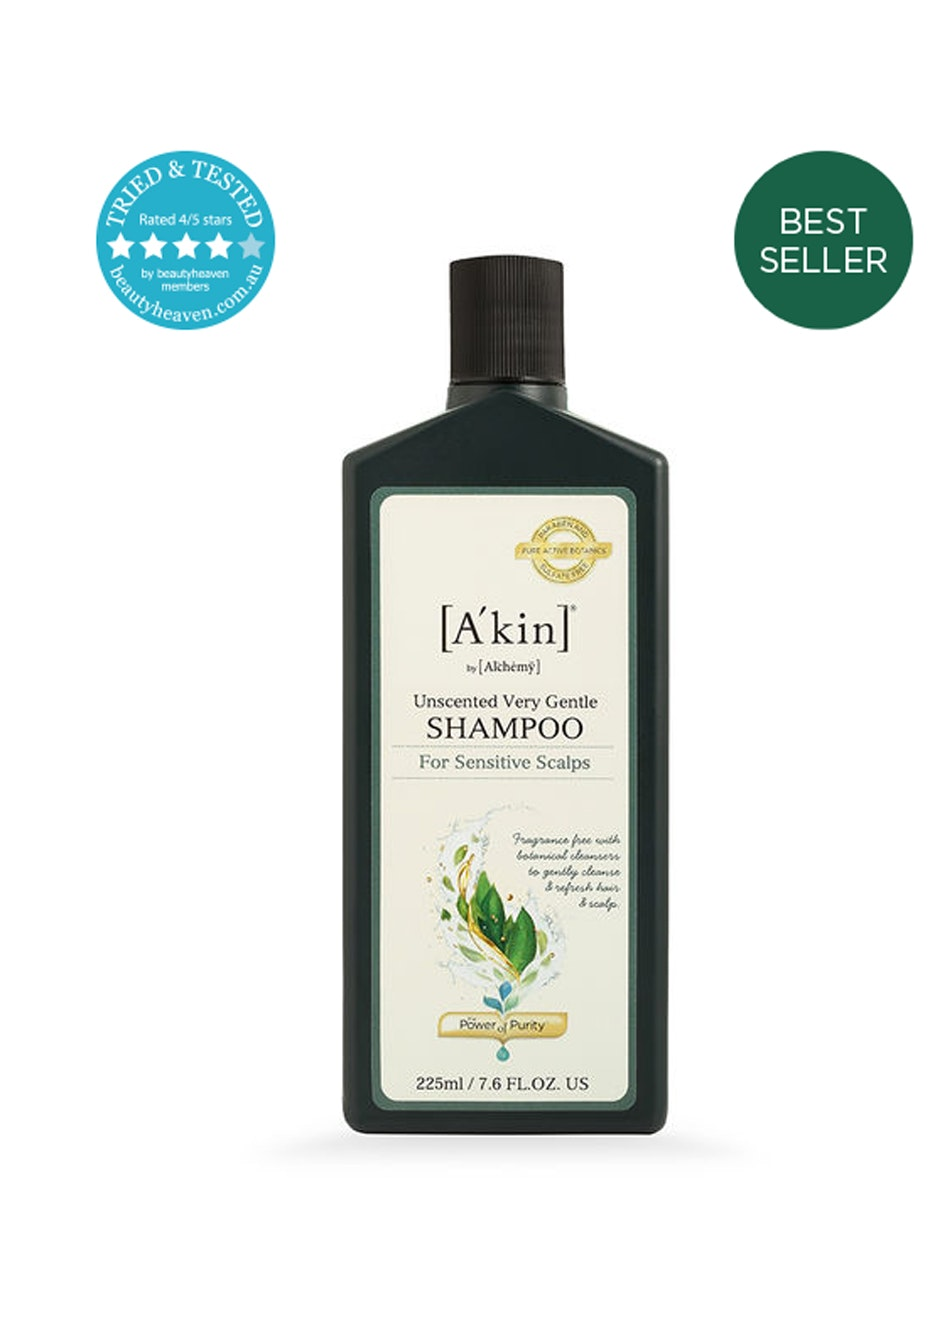 A'kin  - Unscented Very Gentle Shampoo 225ml